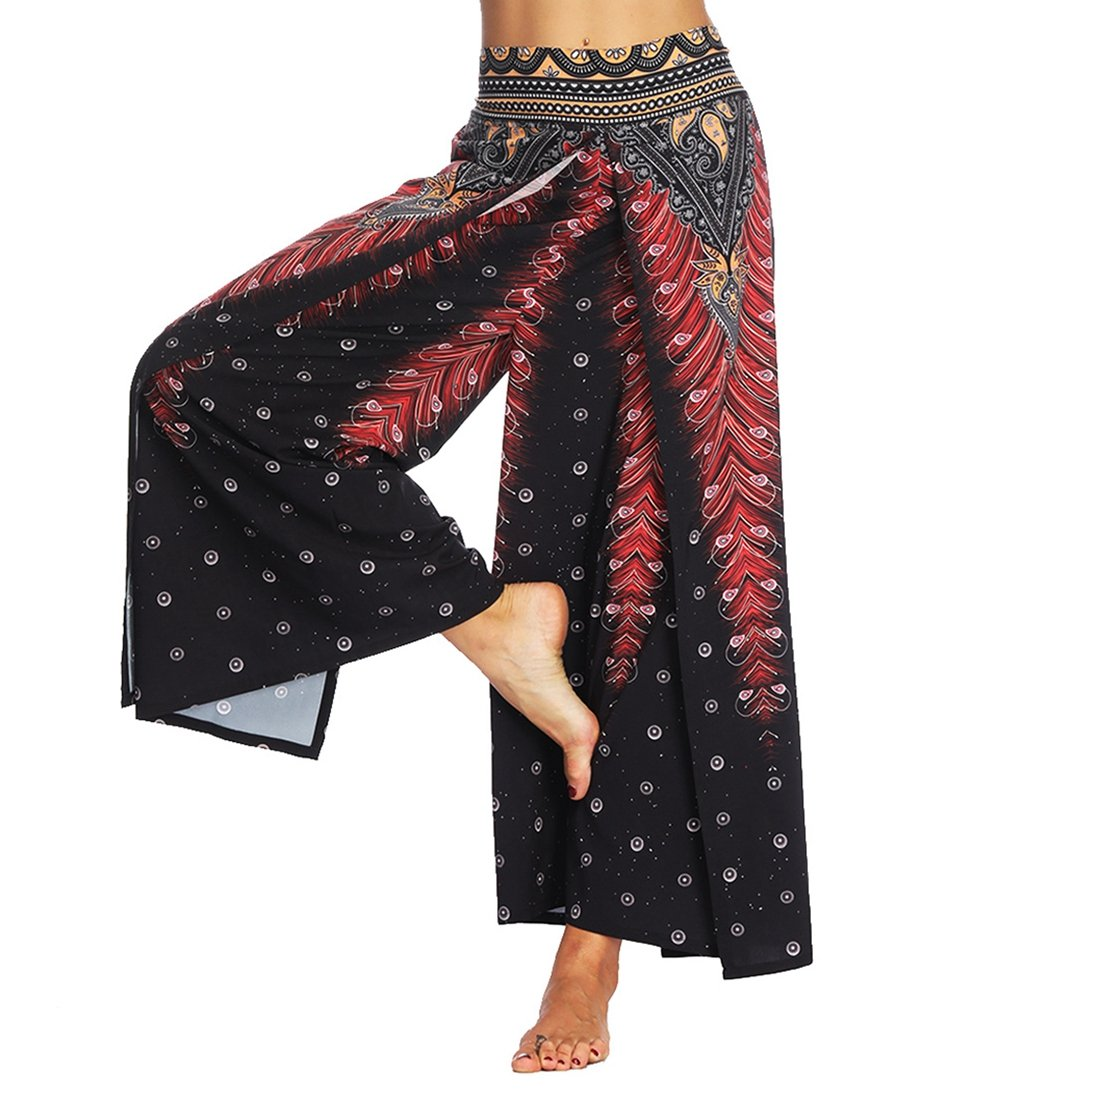 SEVENWELL Women Sexy Waist Wide Leg Floral Pants Casual Summer Gypsy Hippie Boho Yoga Harem Pants Black Peacock Feathers L